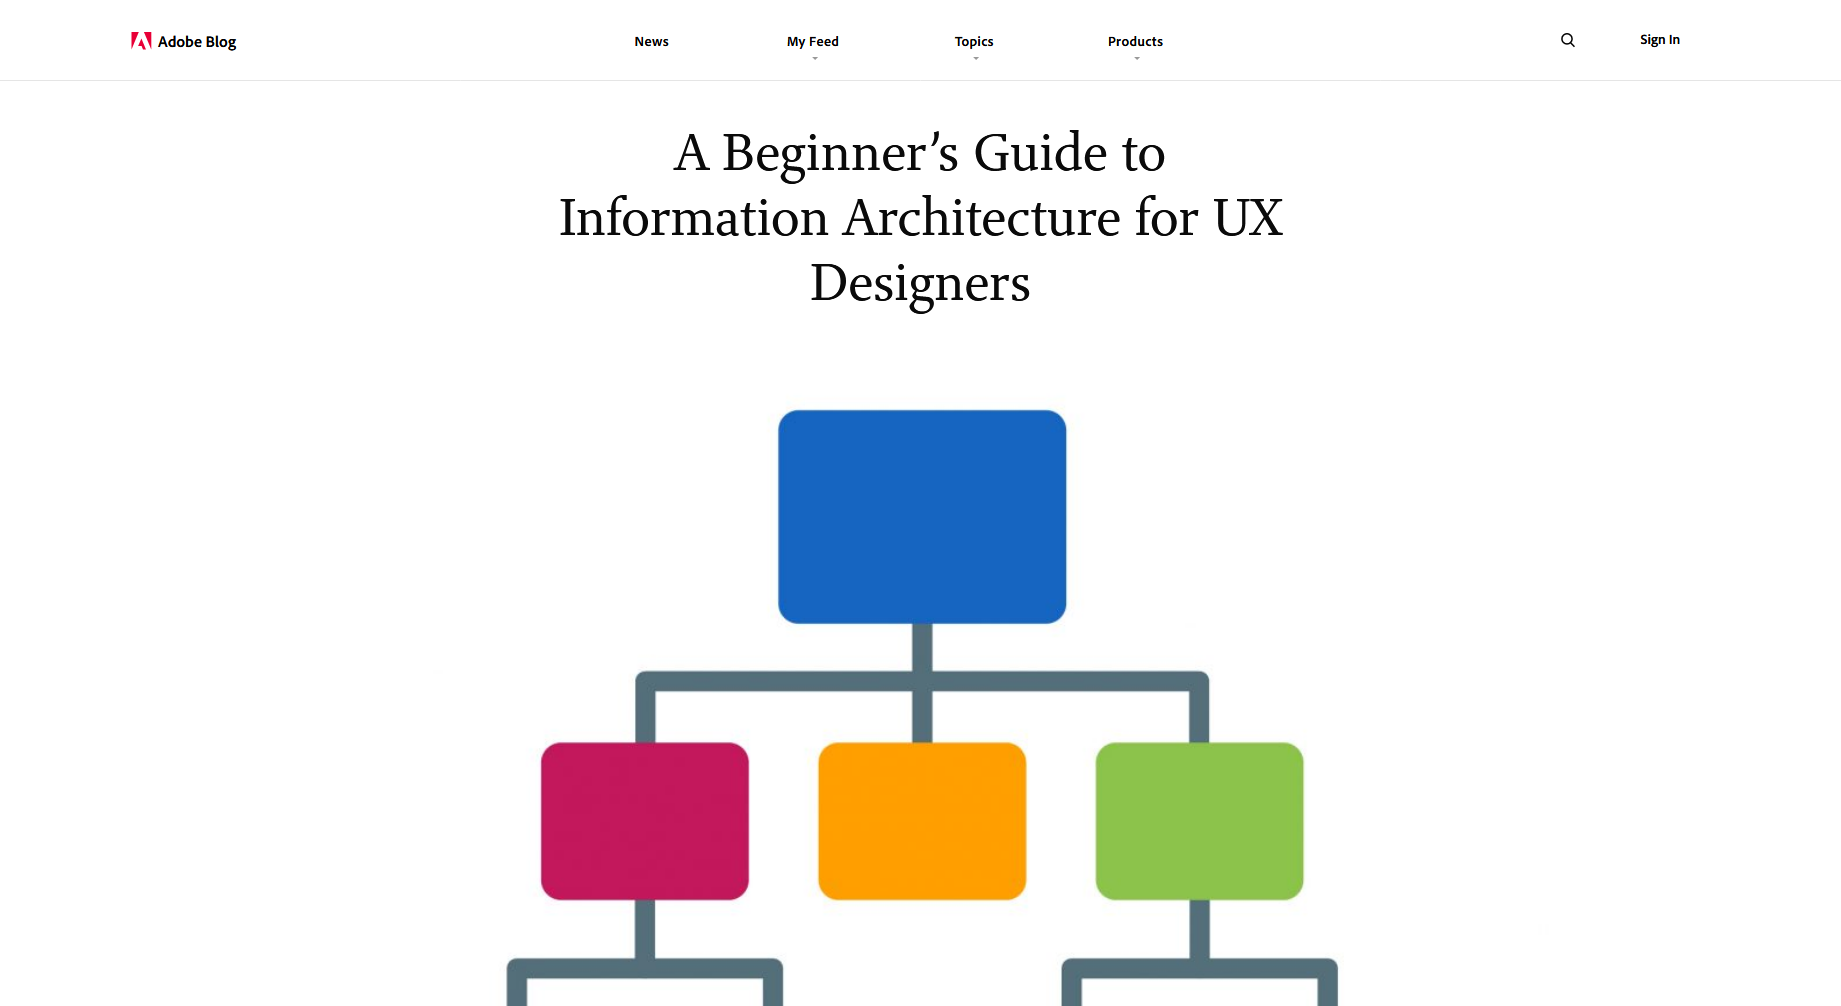 A Beginner's Guide to Information Architecture for UX Designers — Adobe